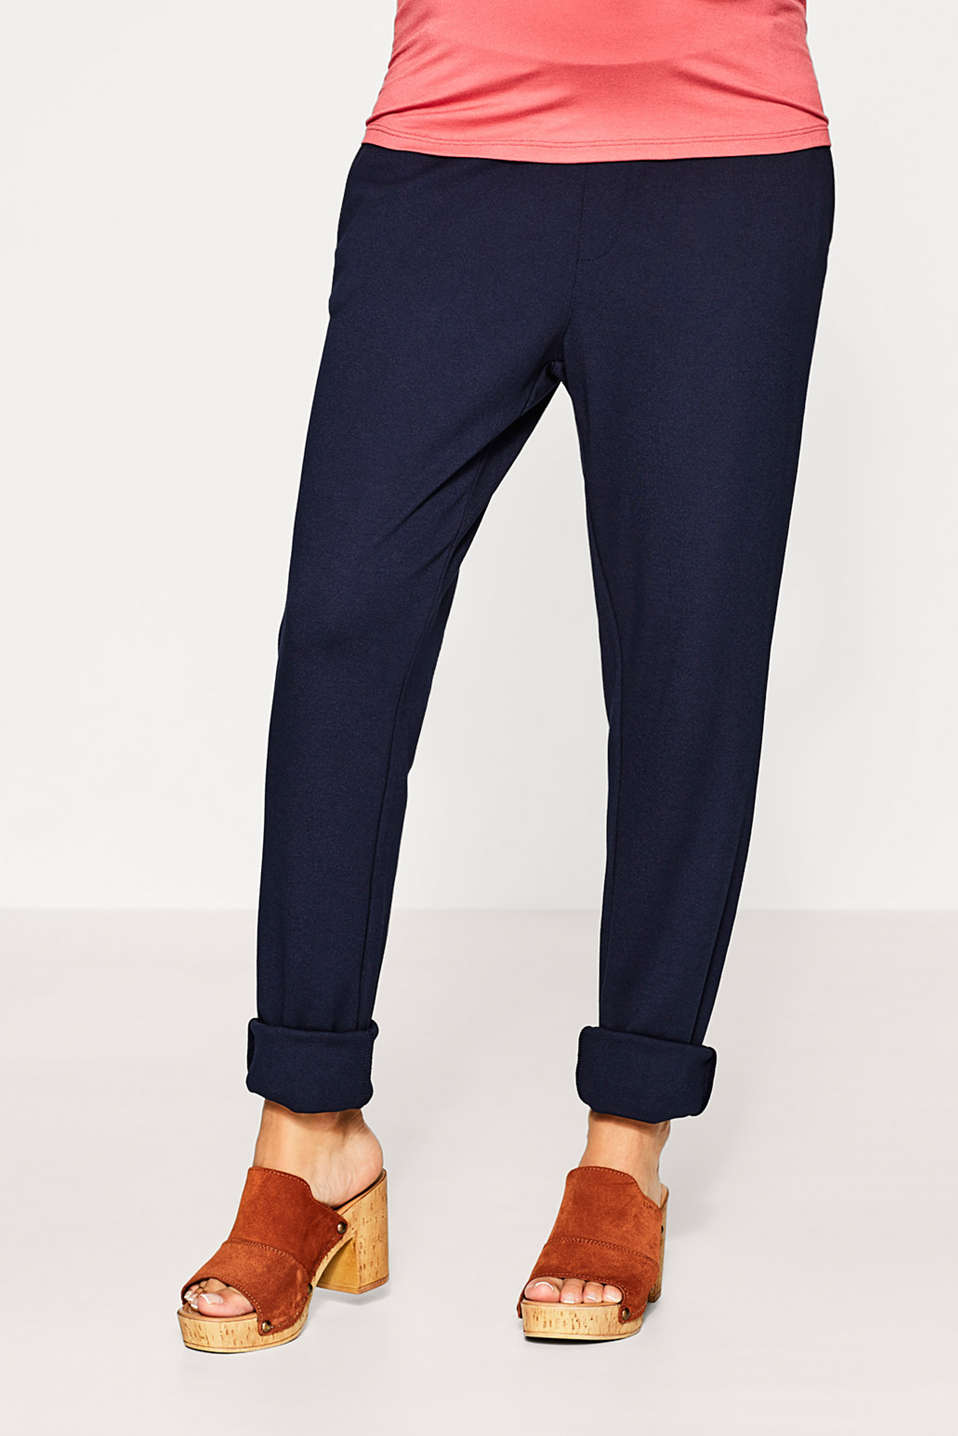 Esprit - Jersey trousers with under-bump waistband